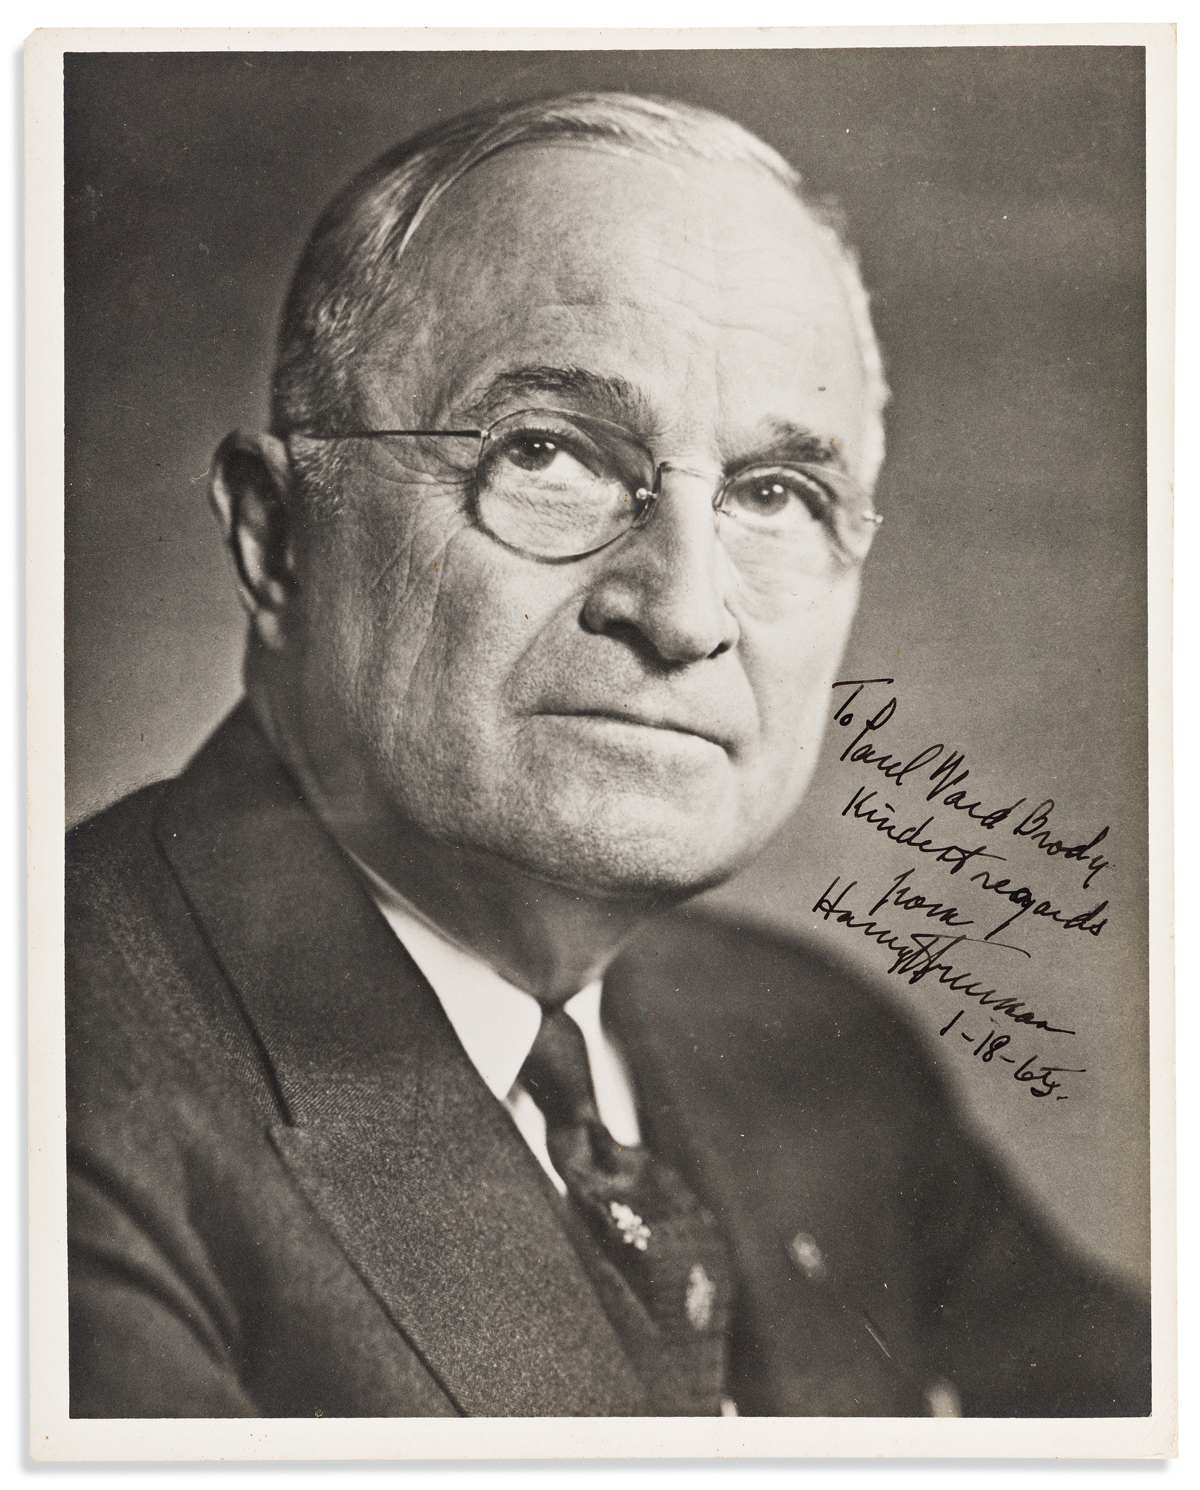 TRUMAN, HARRY S. Photograph Signed and Inscribed, To Paul Ward Brody / Kindest regards / from / HarrySTruman / 1-18-65,